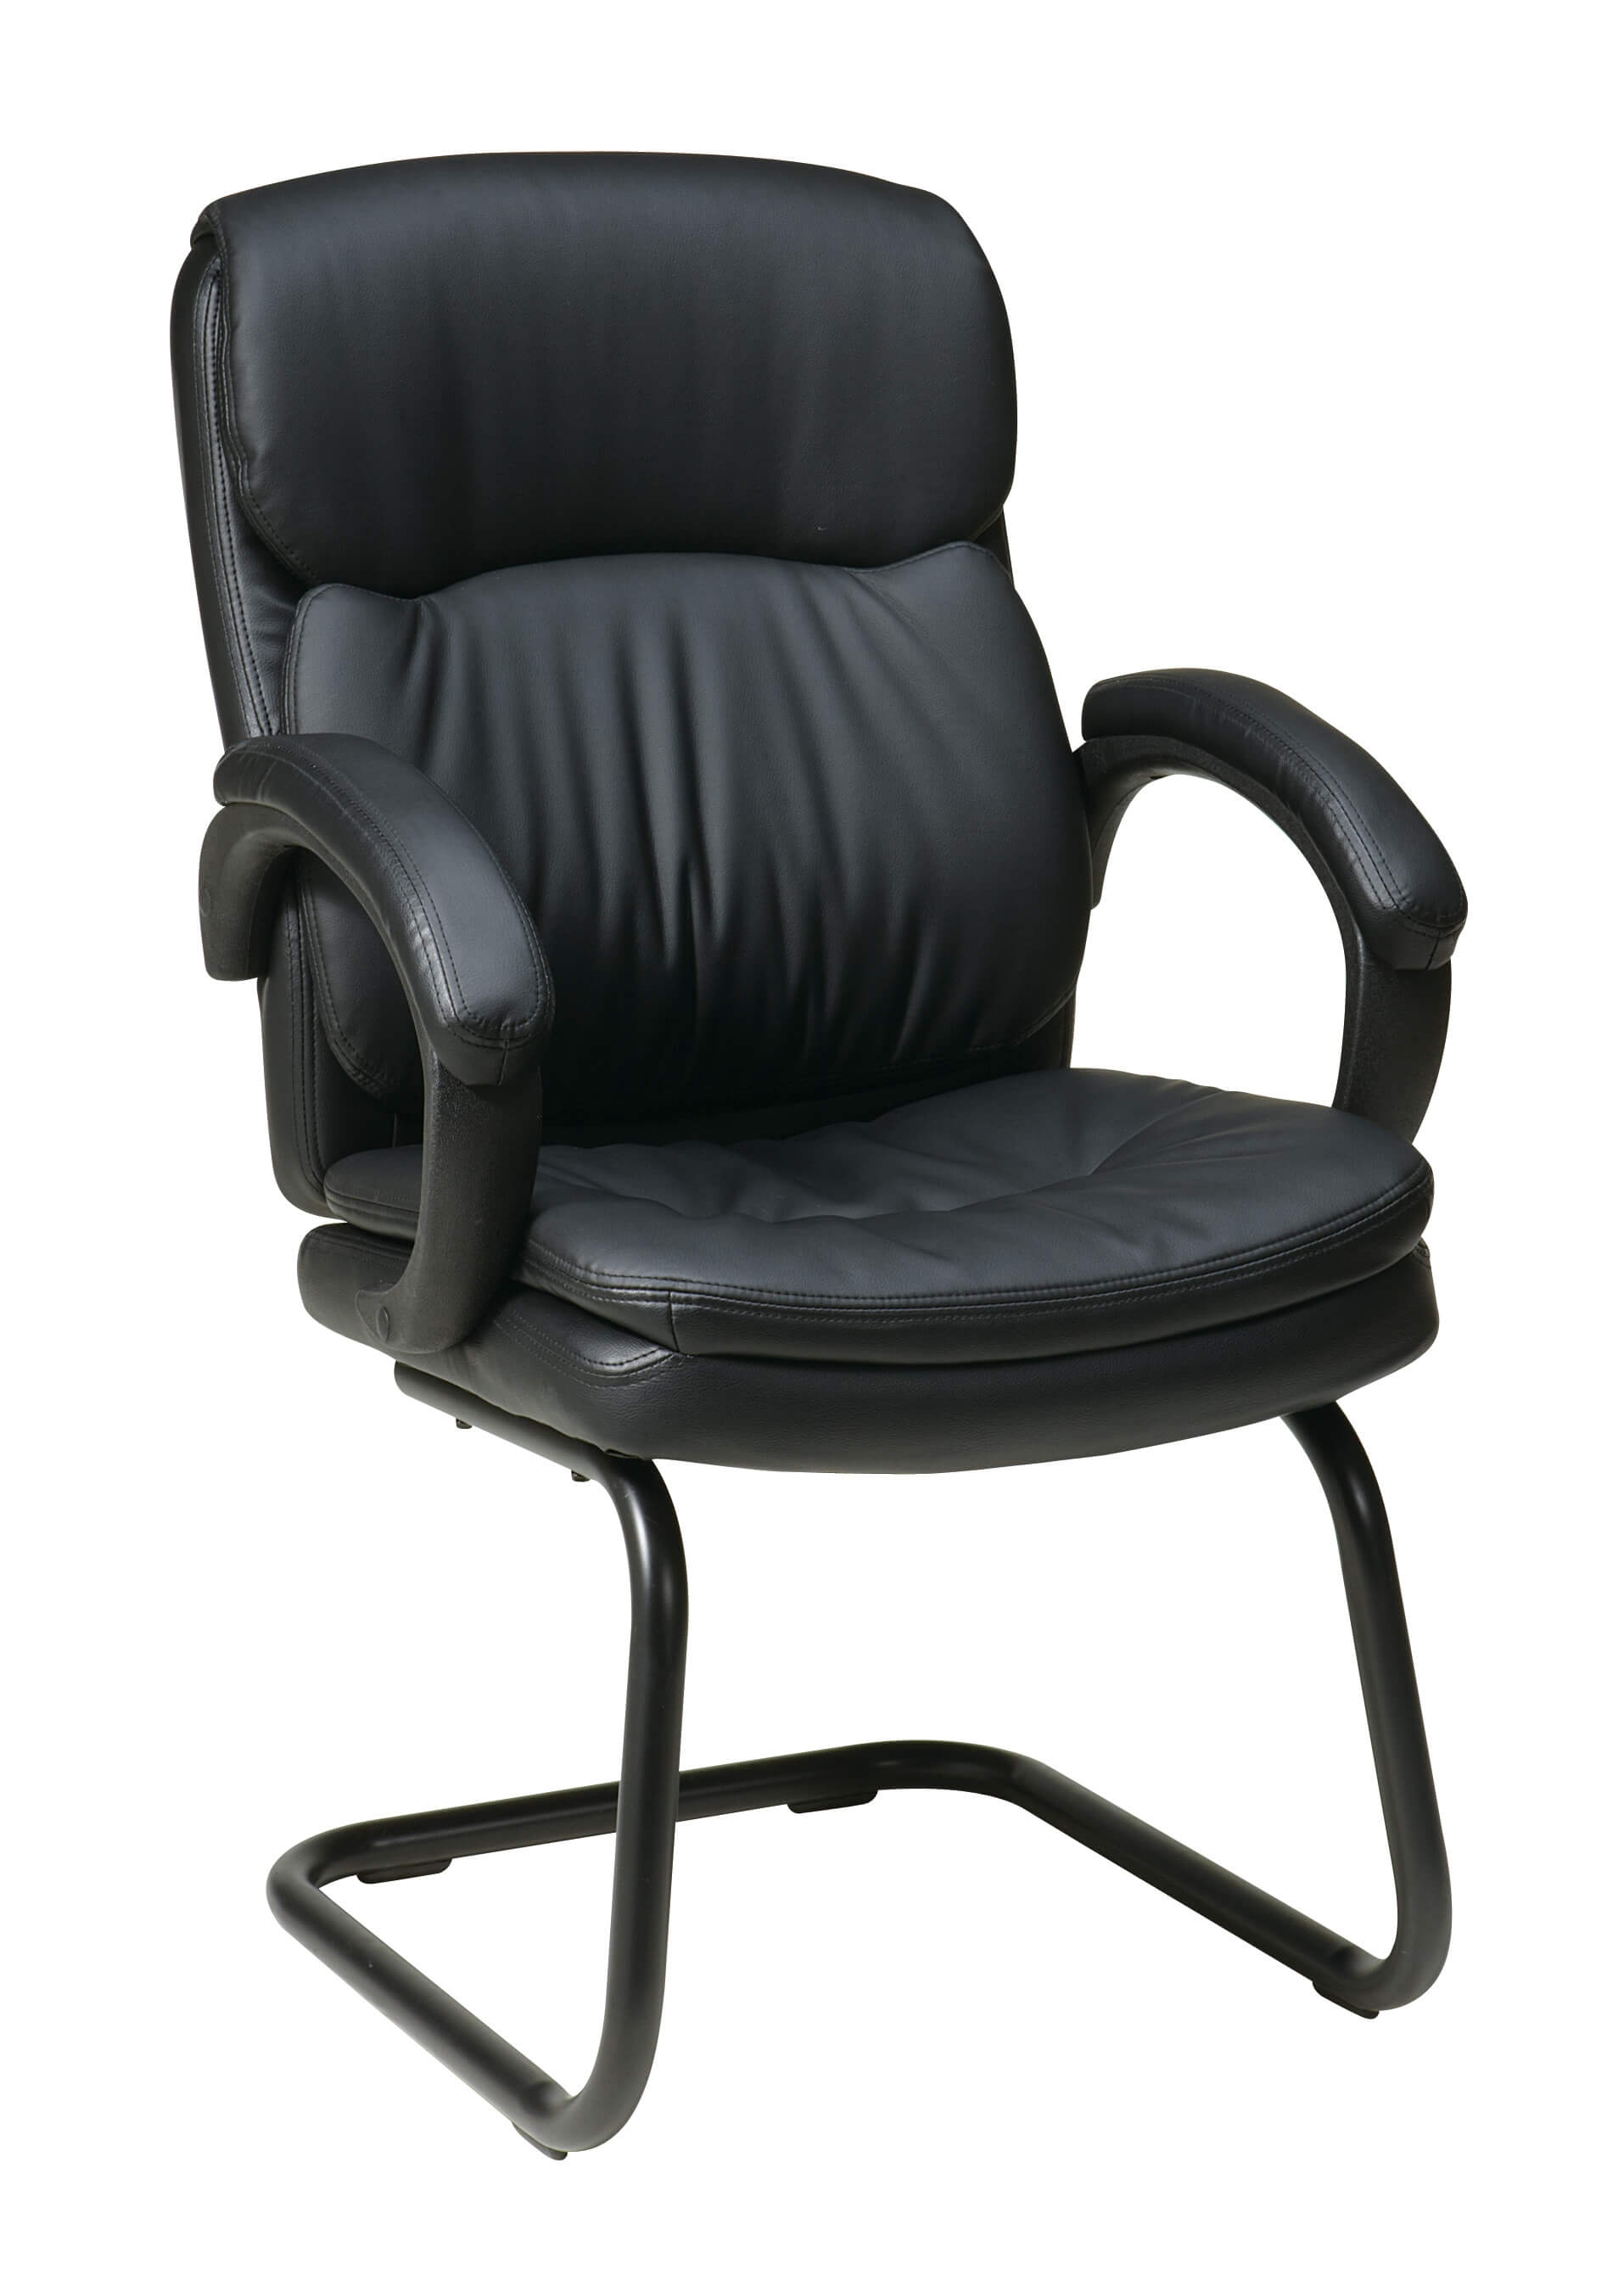 office-waiting-room-chairs-black-leather-office-chair.jpg